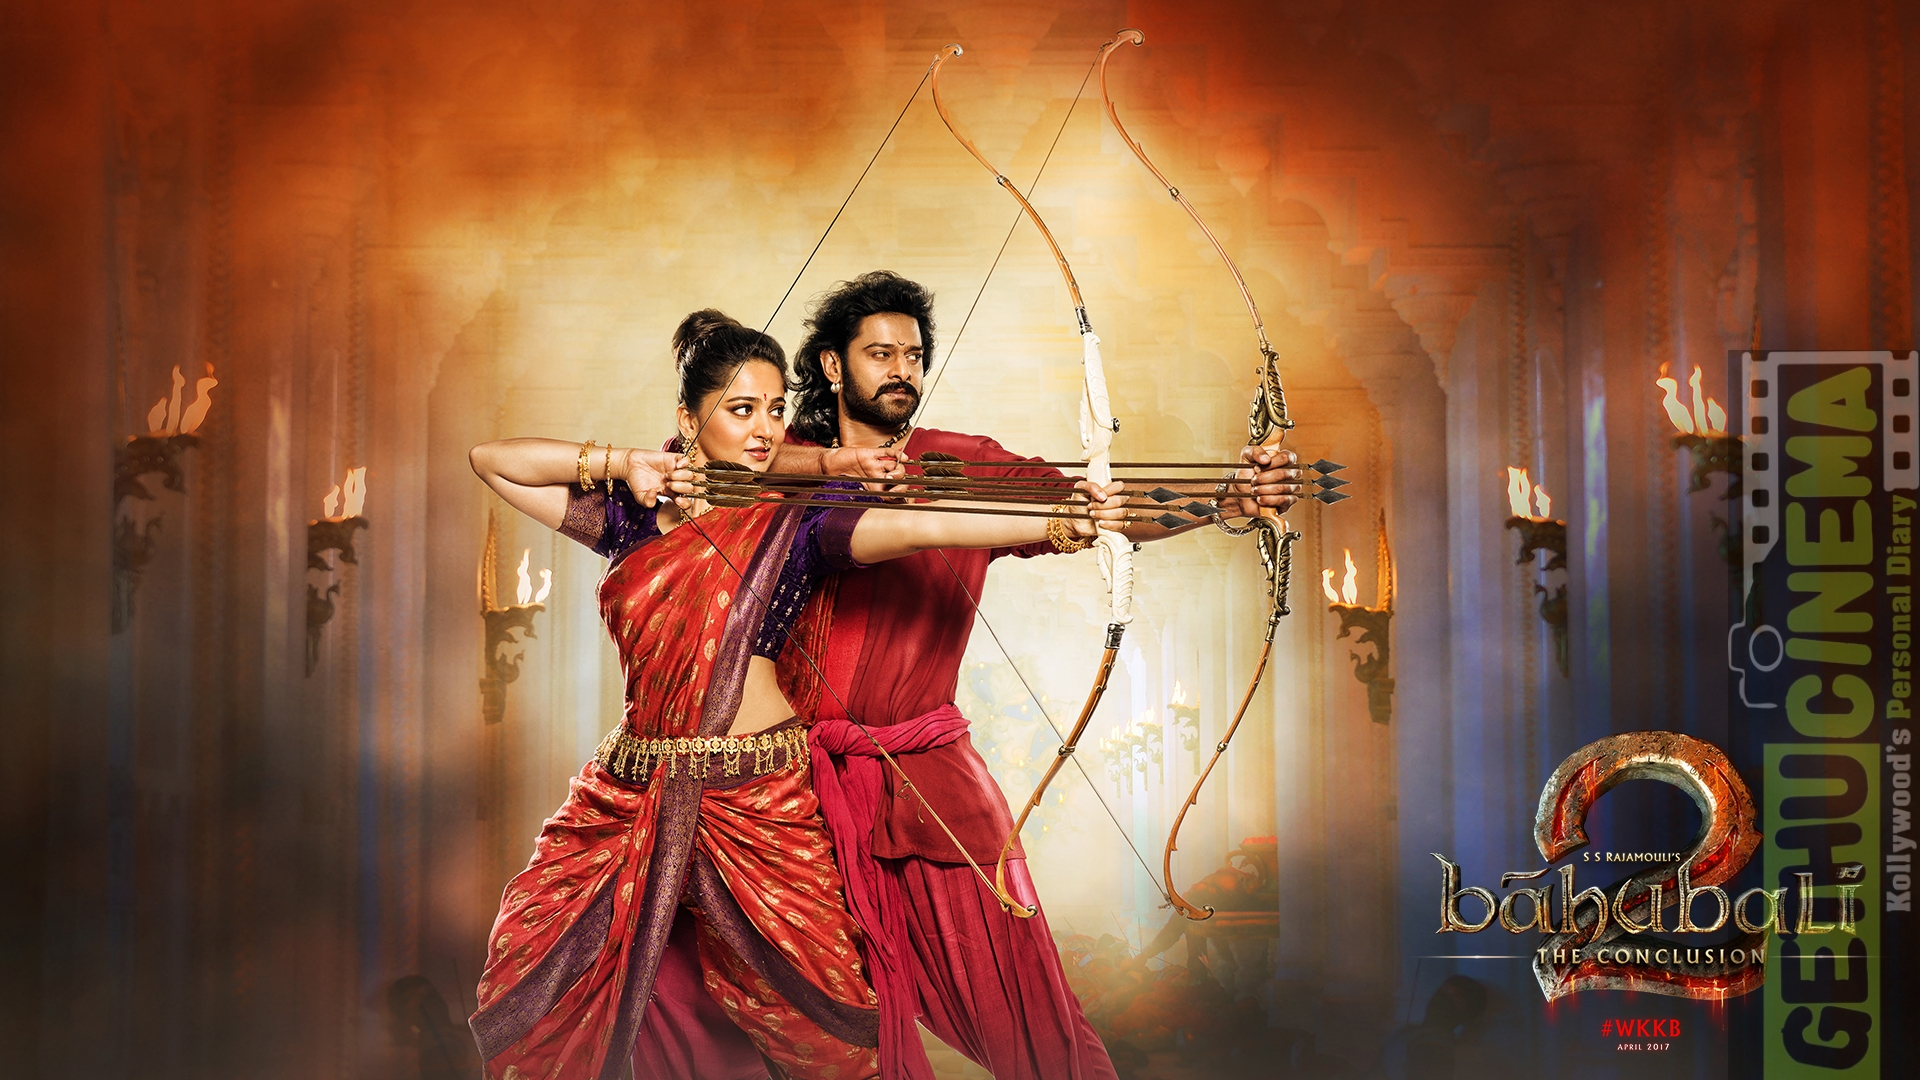 baahubali-the-conclusion-wallpaper-desktop-High Resolution - Gethucinema-1 (3)